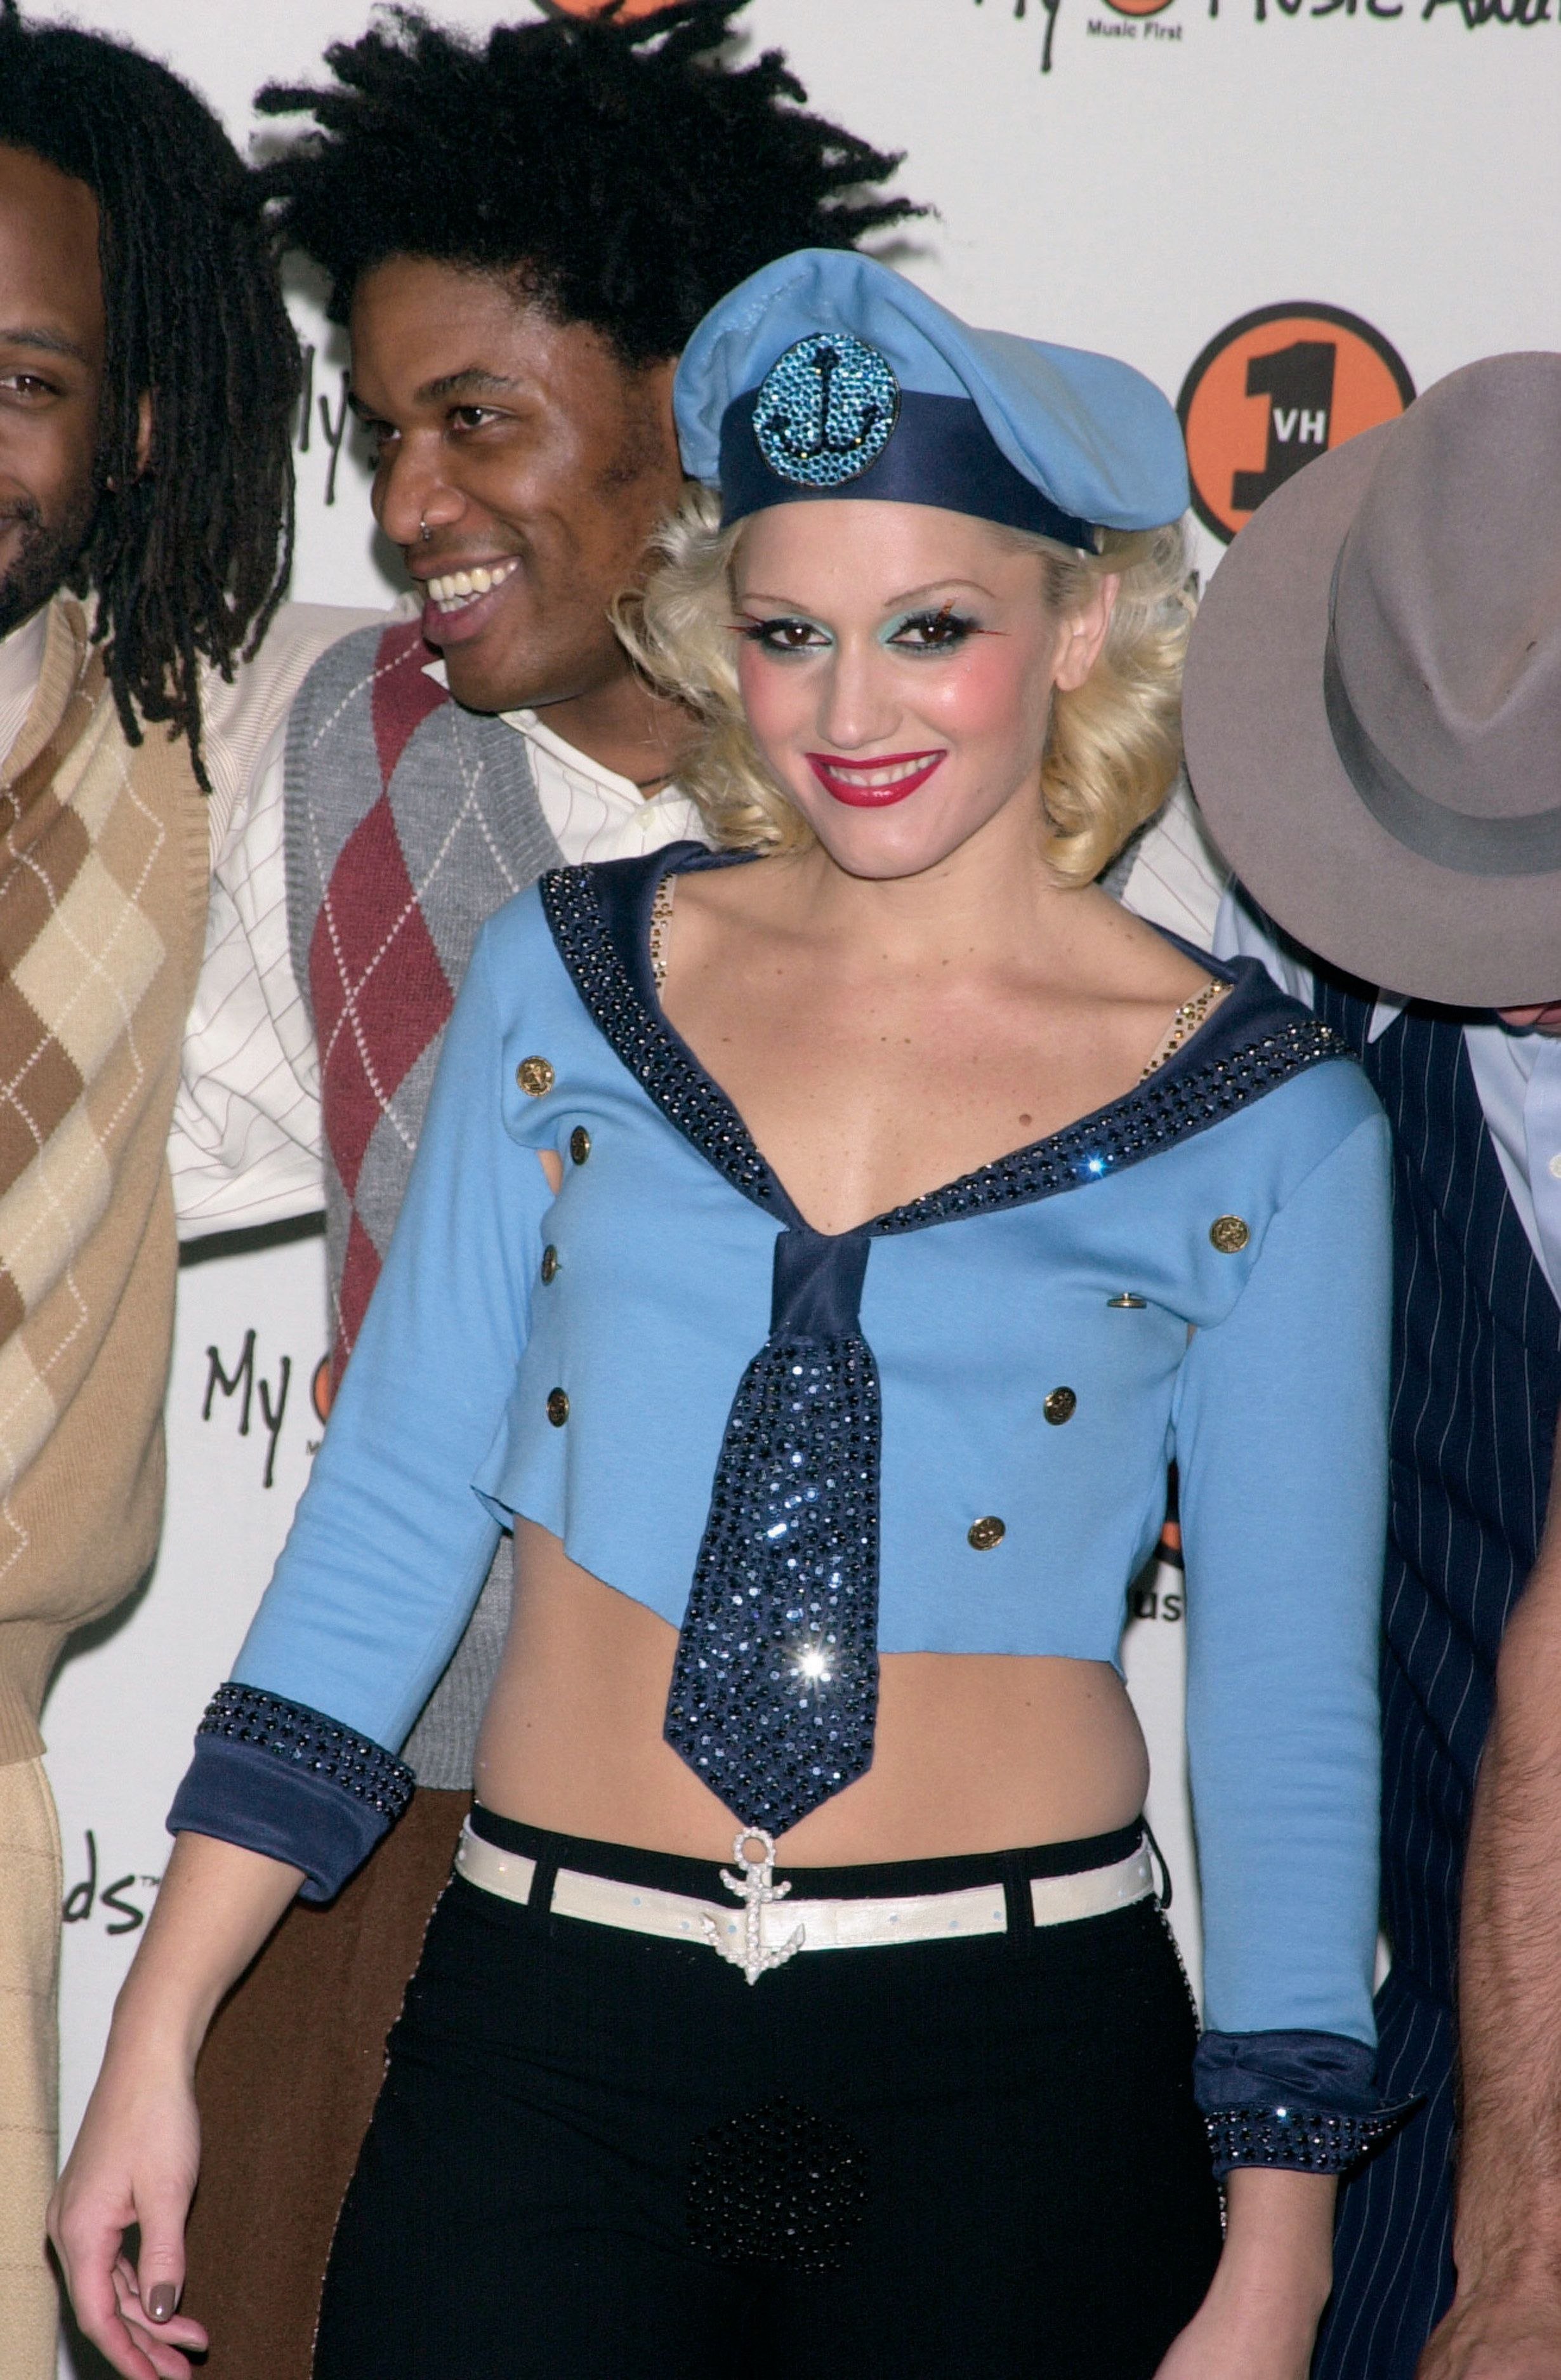 Singer Gwen Stefani arrives at the 2000 VH1 Music Awards. This photo appears on page 261 in Frank Trapper's RED CARPET book. (Photo by Frank Trapper/Corbis via Getty Images)